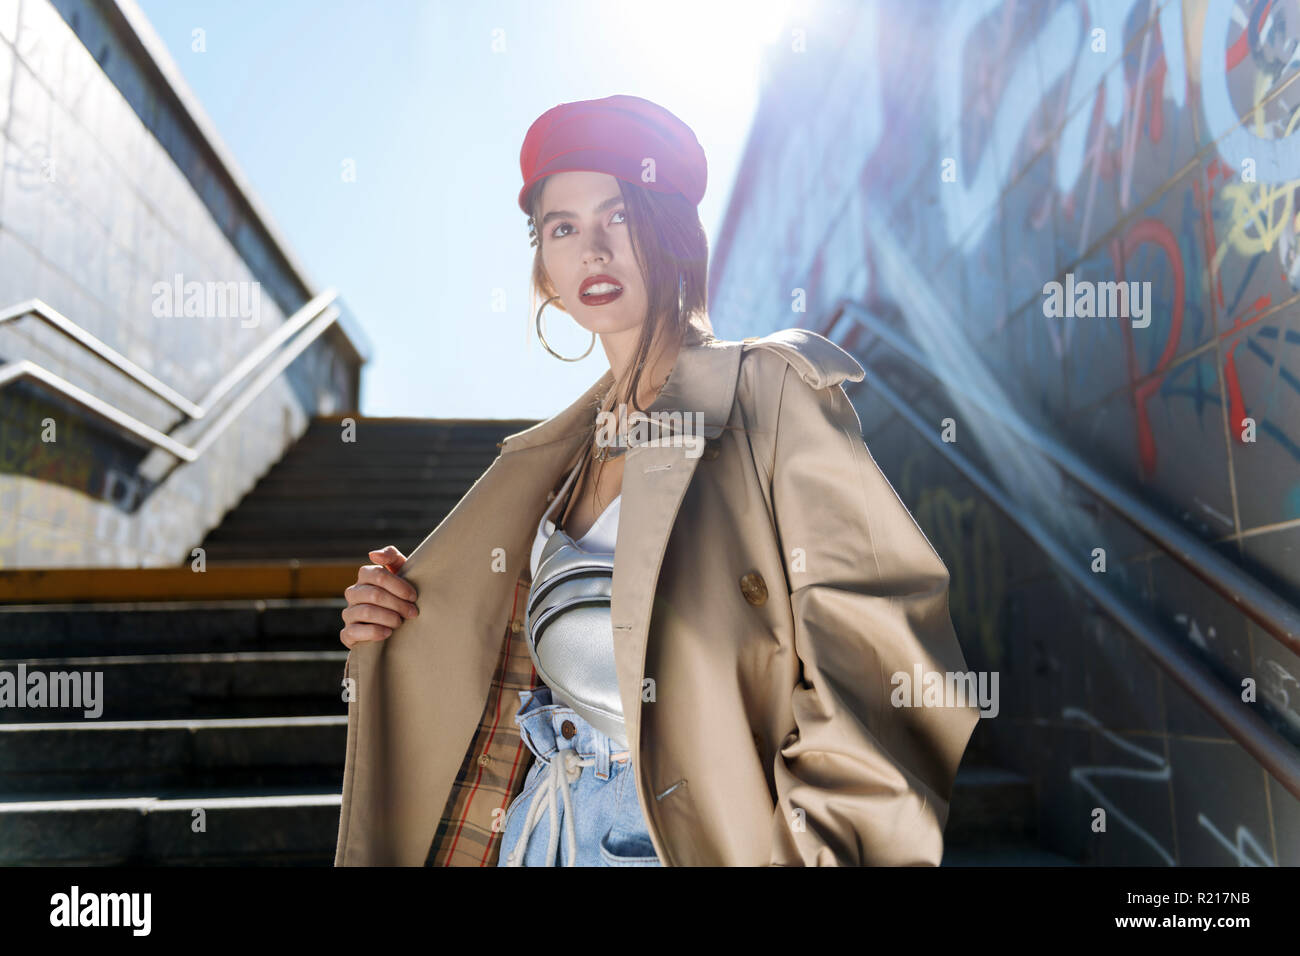 Trendy model wearing beige trench coat and red beret posing - Stock Image